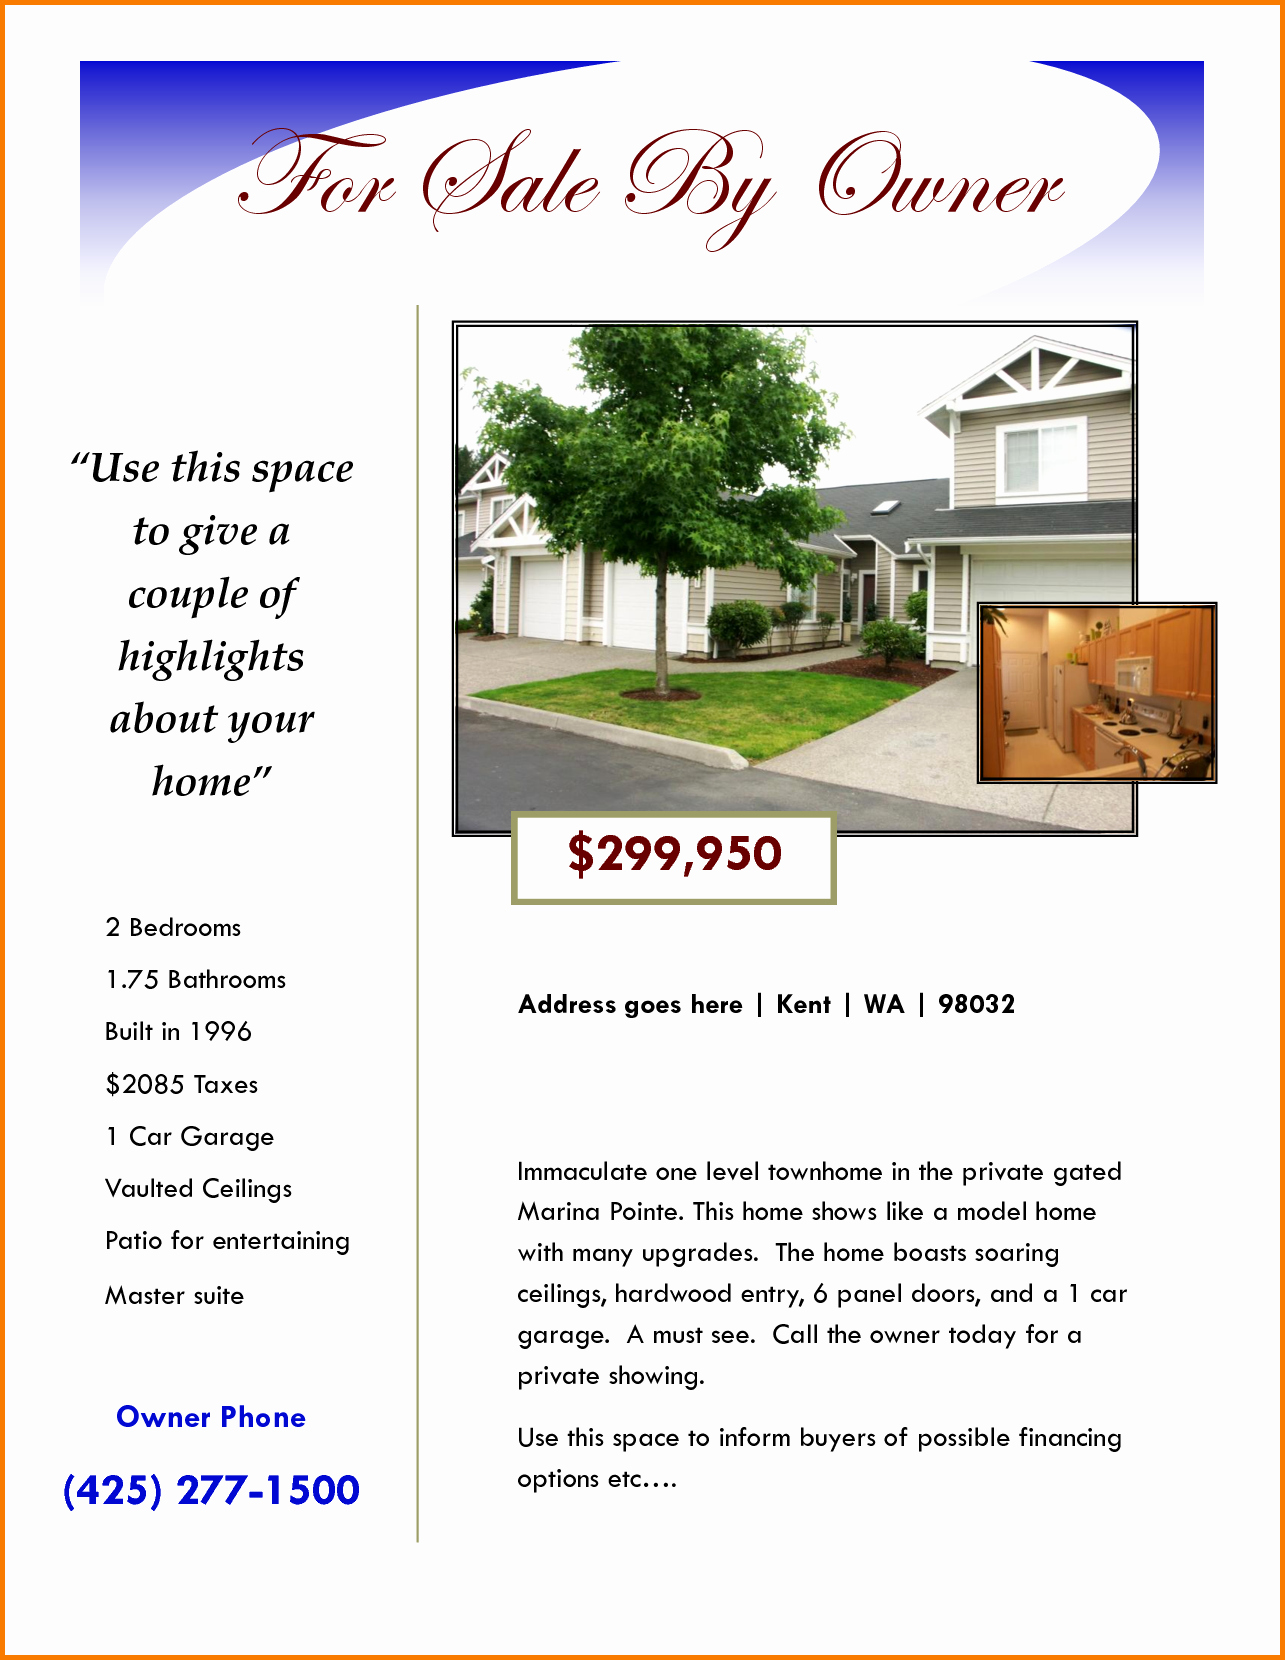 House for Sale Flyer Template Inspirational for Sale Flyer Template